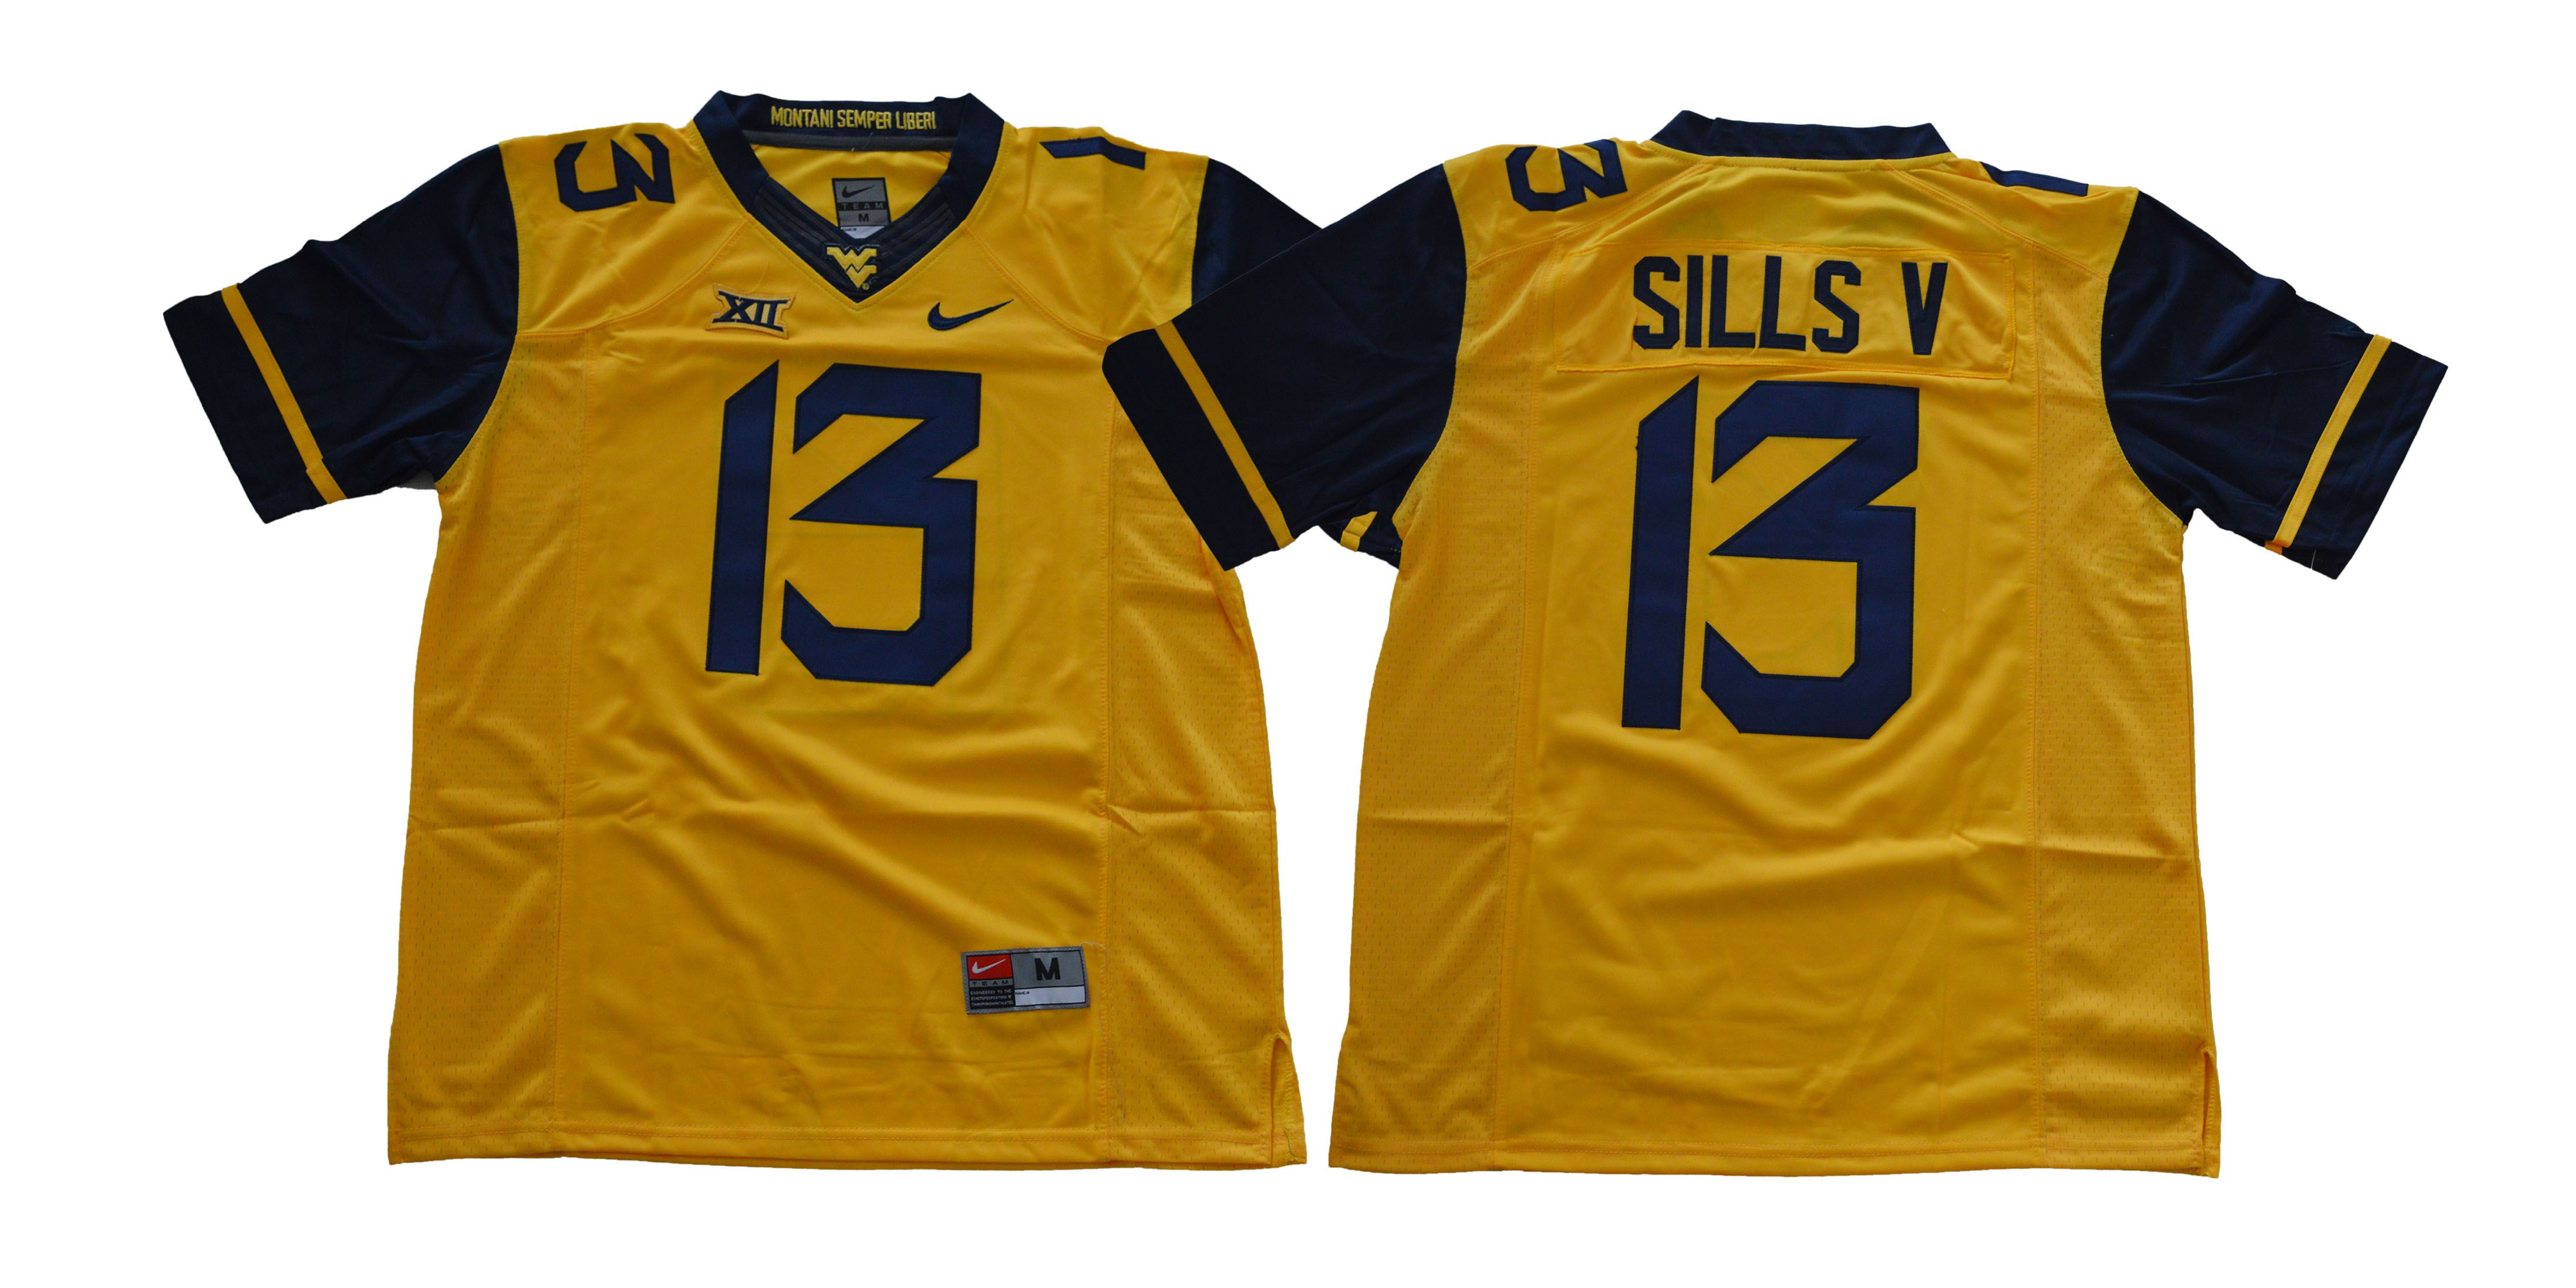 Men West Virginia Mountaineers 13 Sills v Yellow NCAA Jerseys